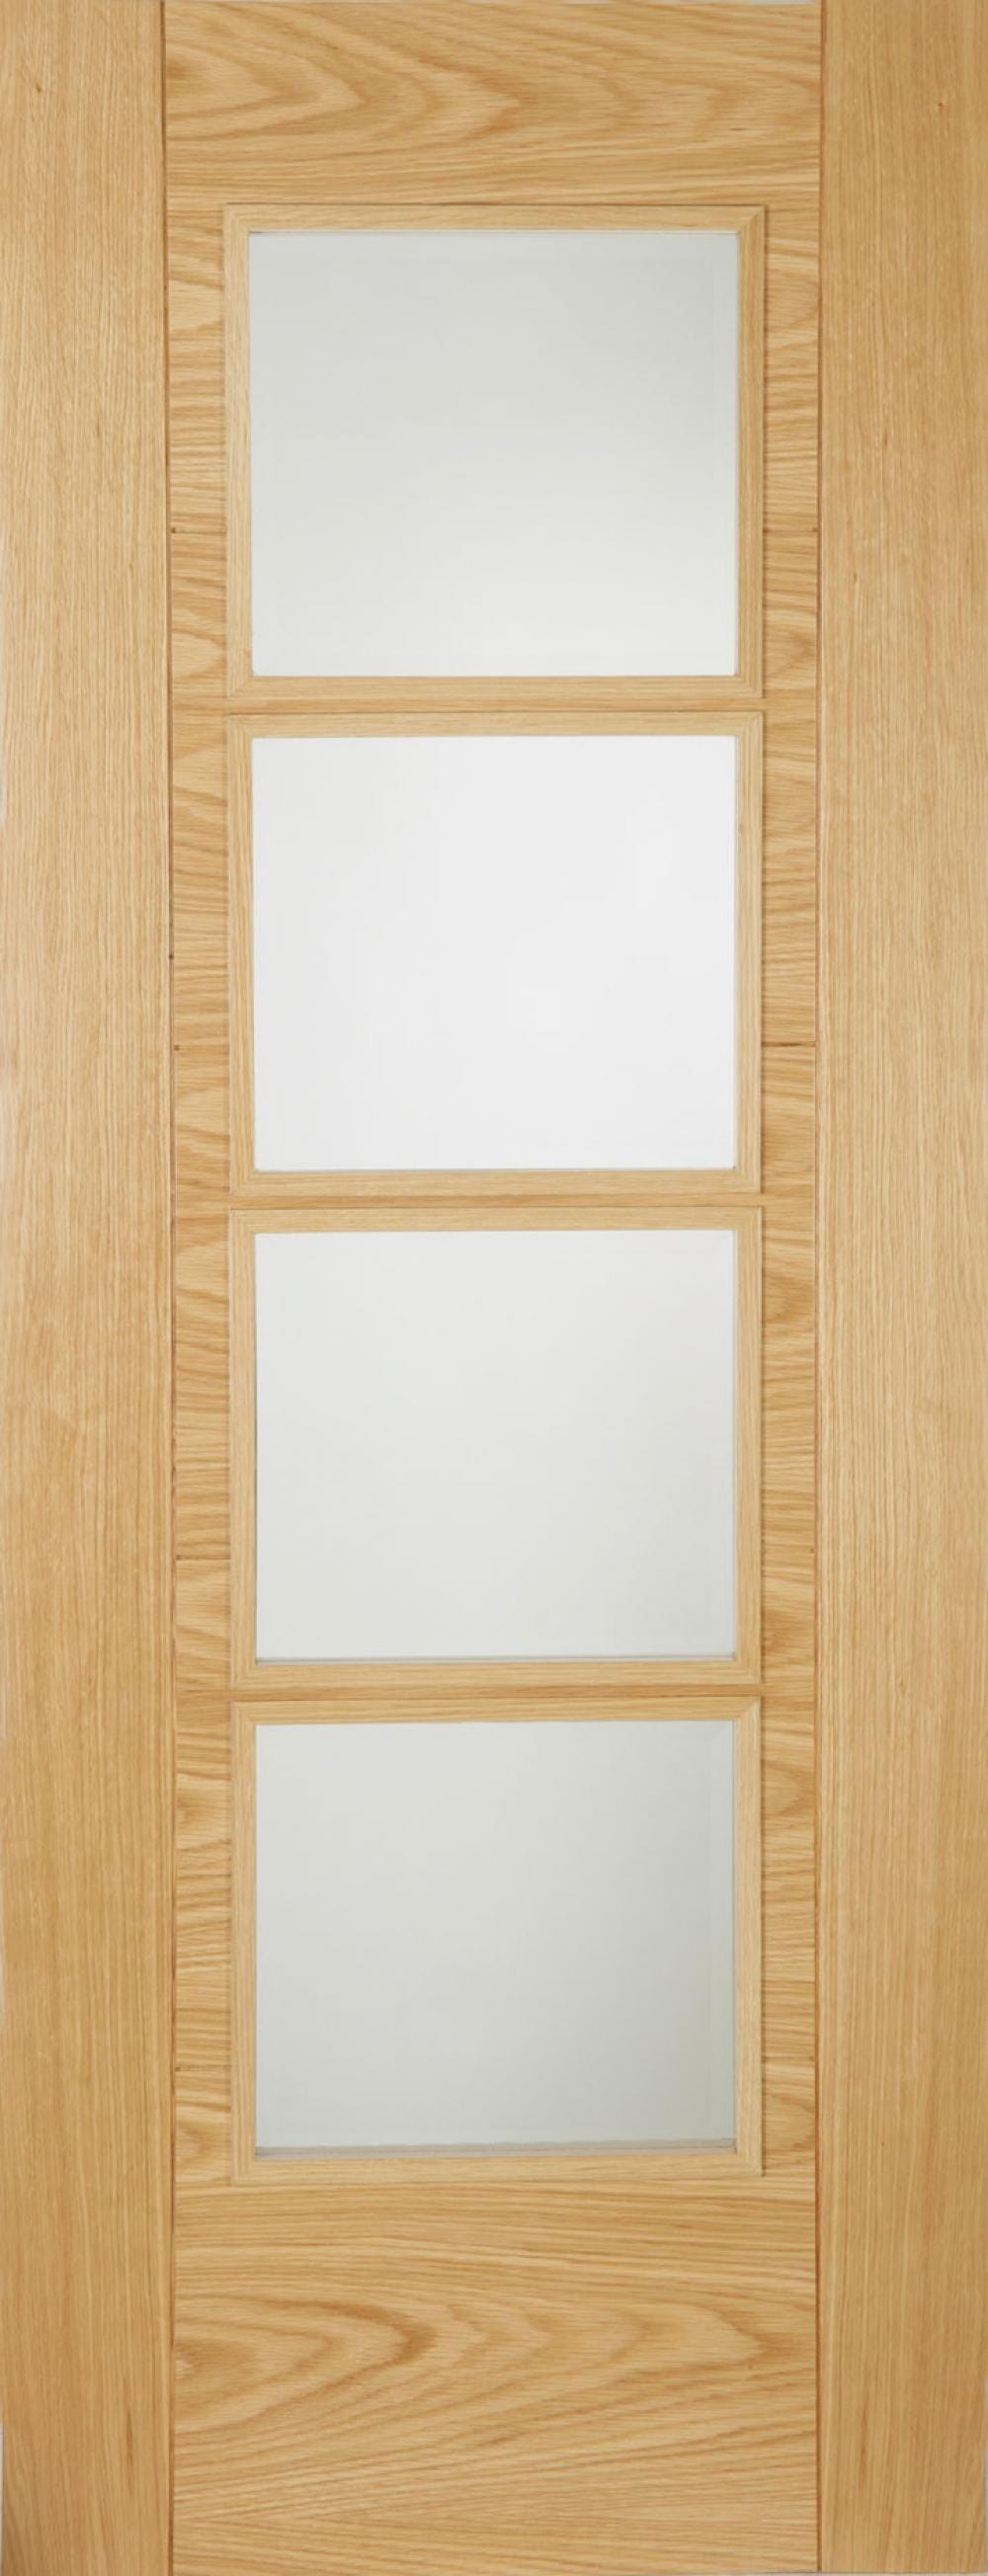 Iseo Oak 4 Light Frosted Glass - Prefinished Image